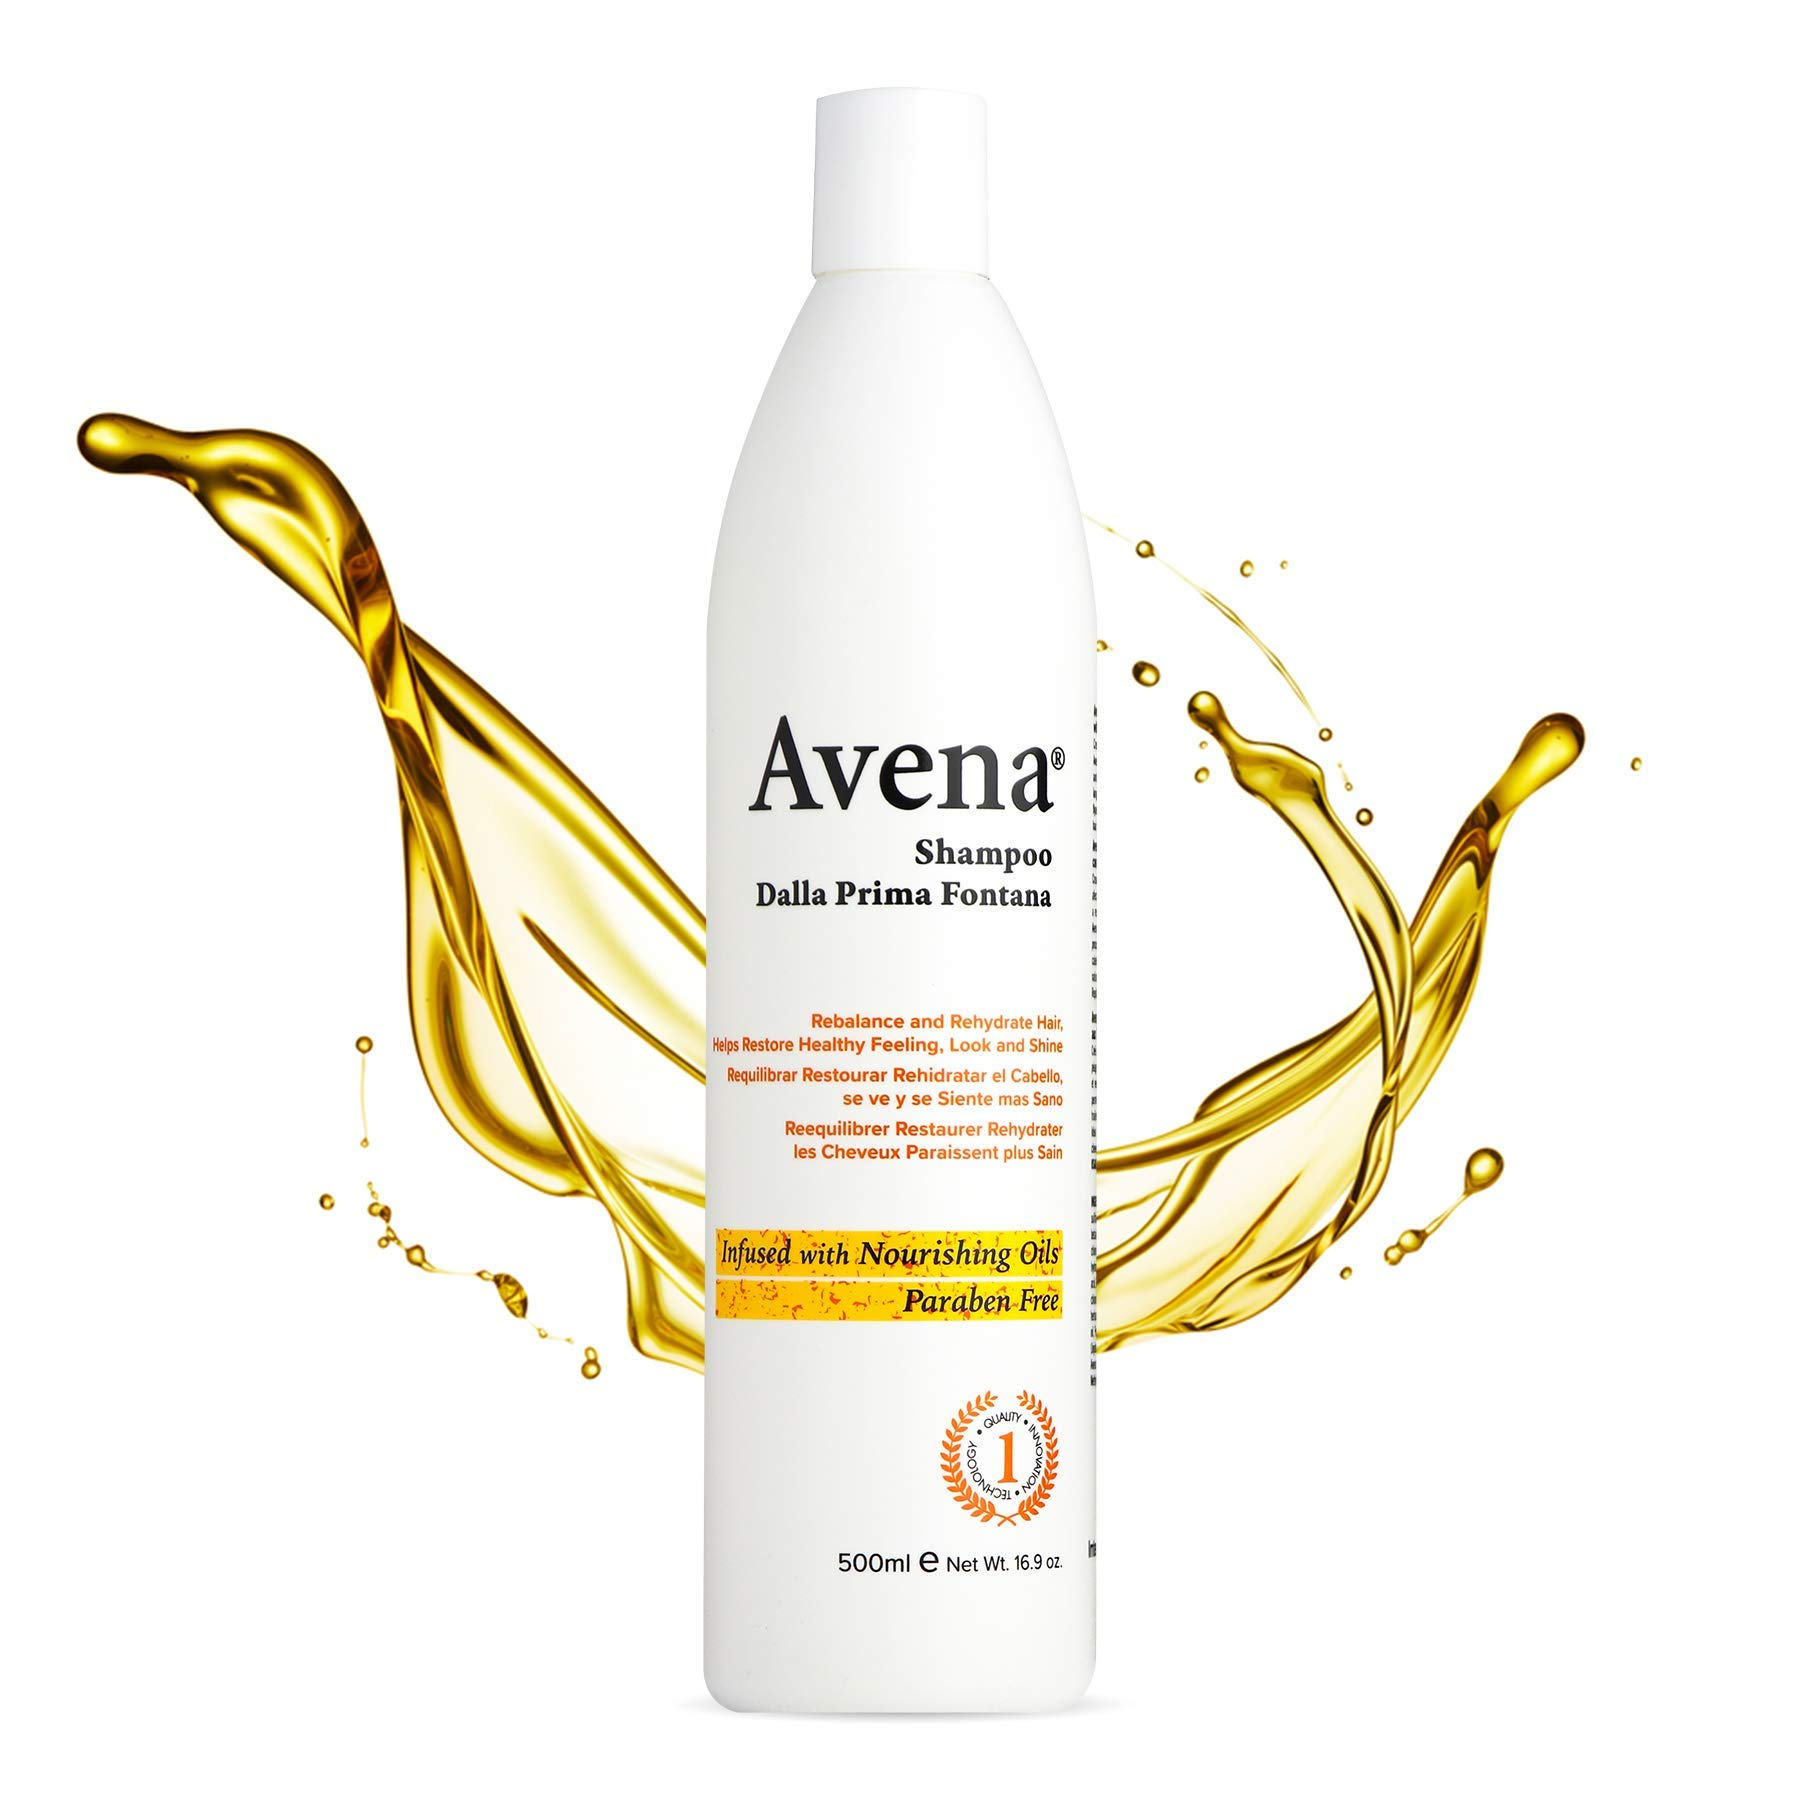 Avena Numero 1 Paraben-Free Shampoo for Colored or Chemically Treated Hair   Infused with Botanical Nourishing oils - Re-Store and Re-balance Natural Shine   Heat protectant   For All hair Types